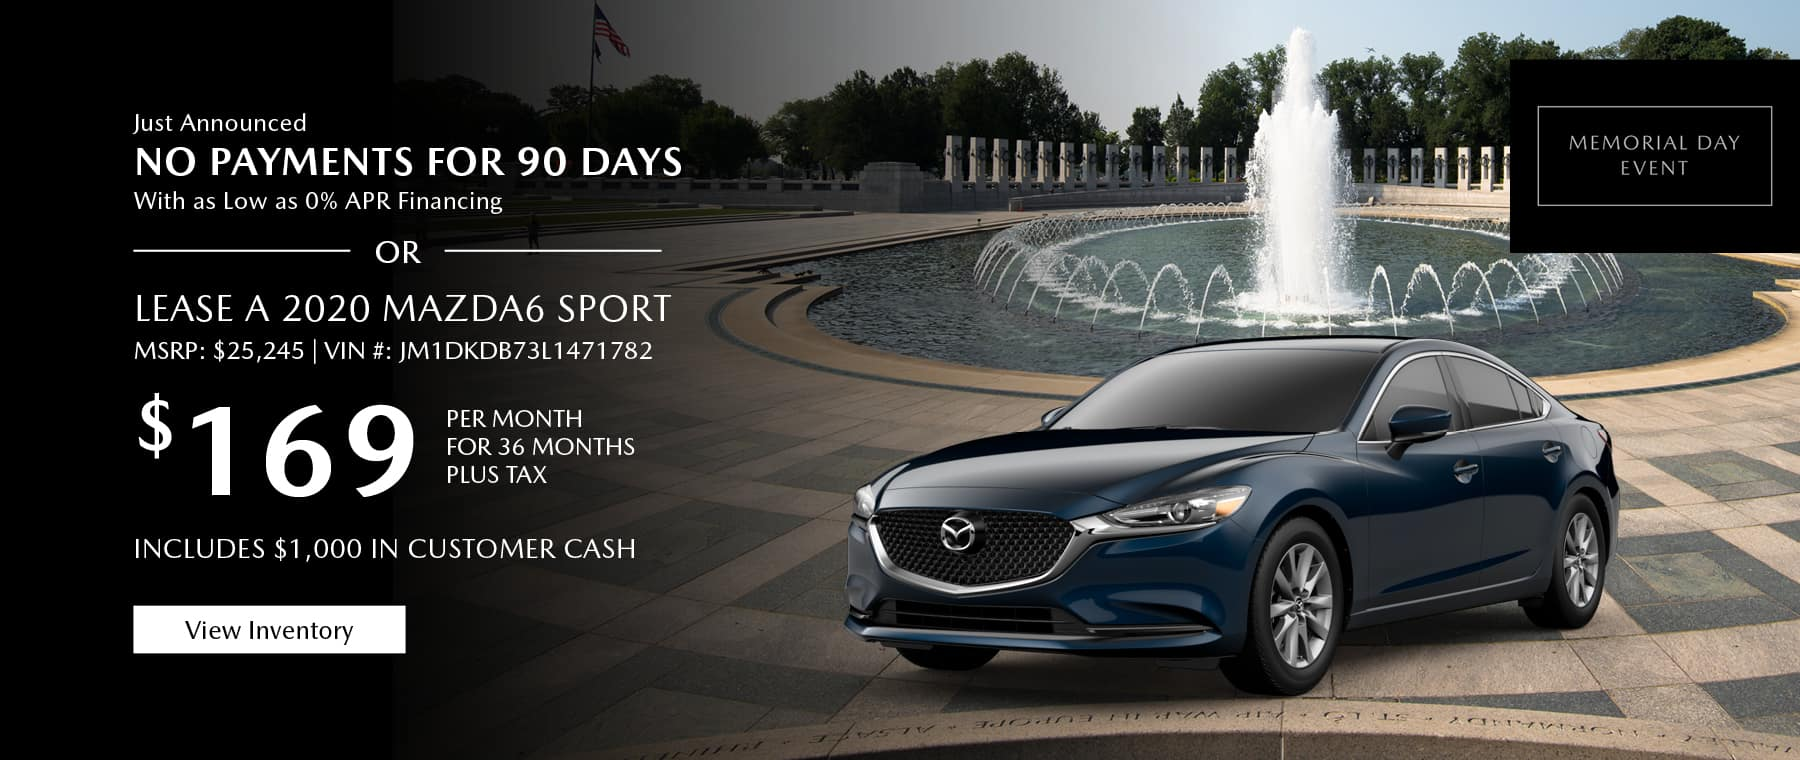 Just Announced, No payments for 90 days with as low as %0 APR financing, or lease the 2020 Mazda6 for $169 per month, plus tax. Gunther will waive your first 2 lease payments. View inventory.